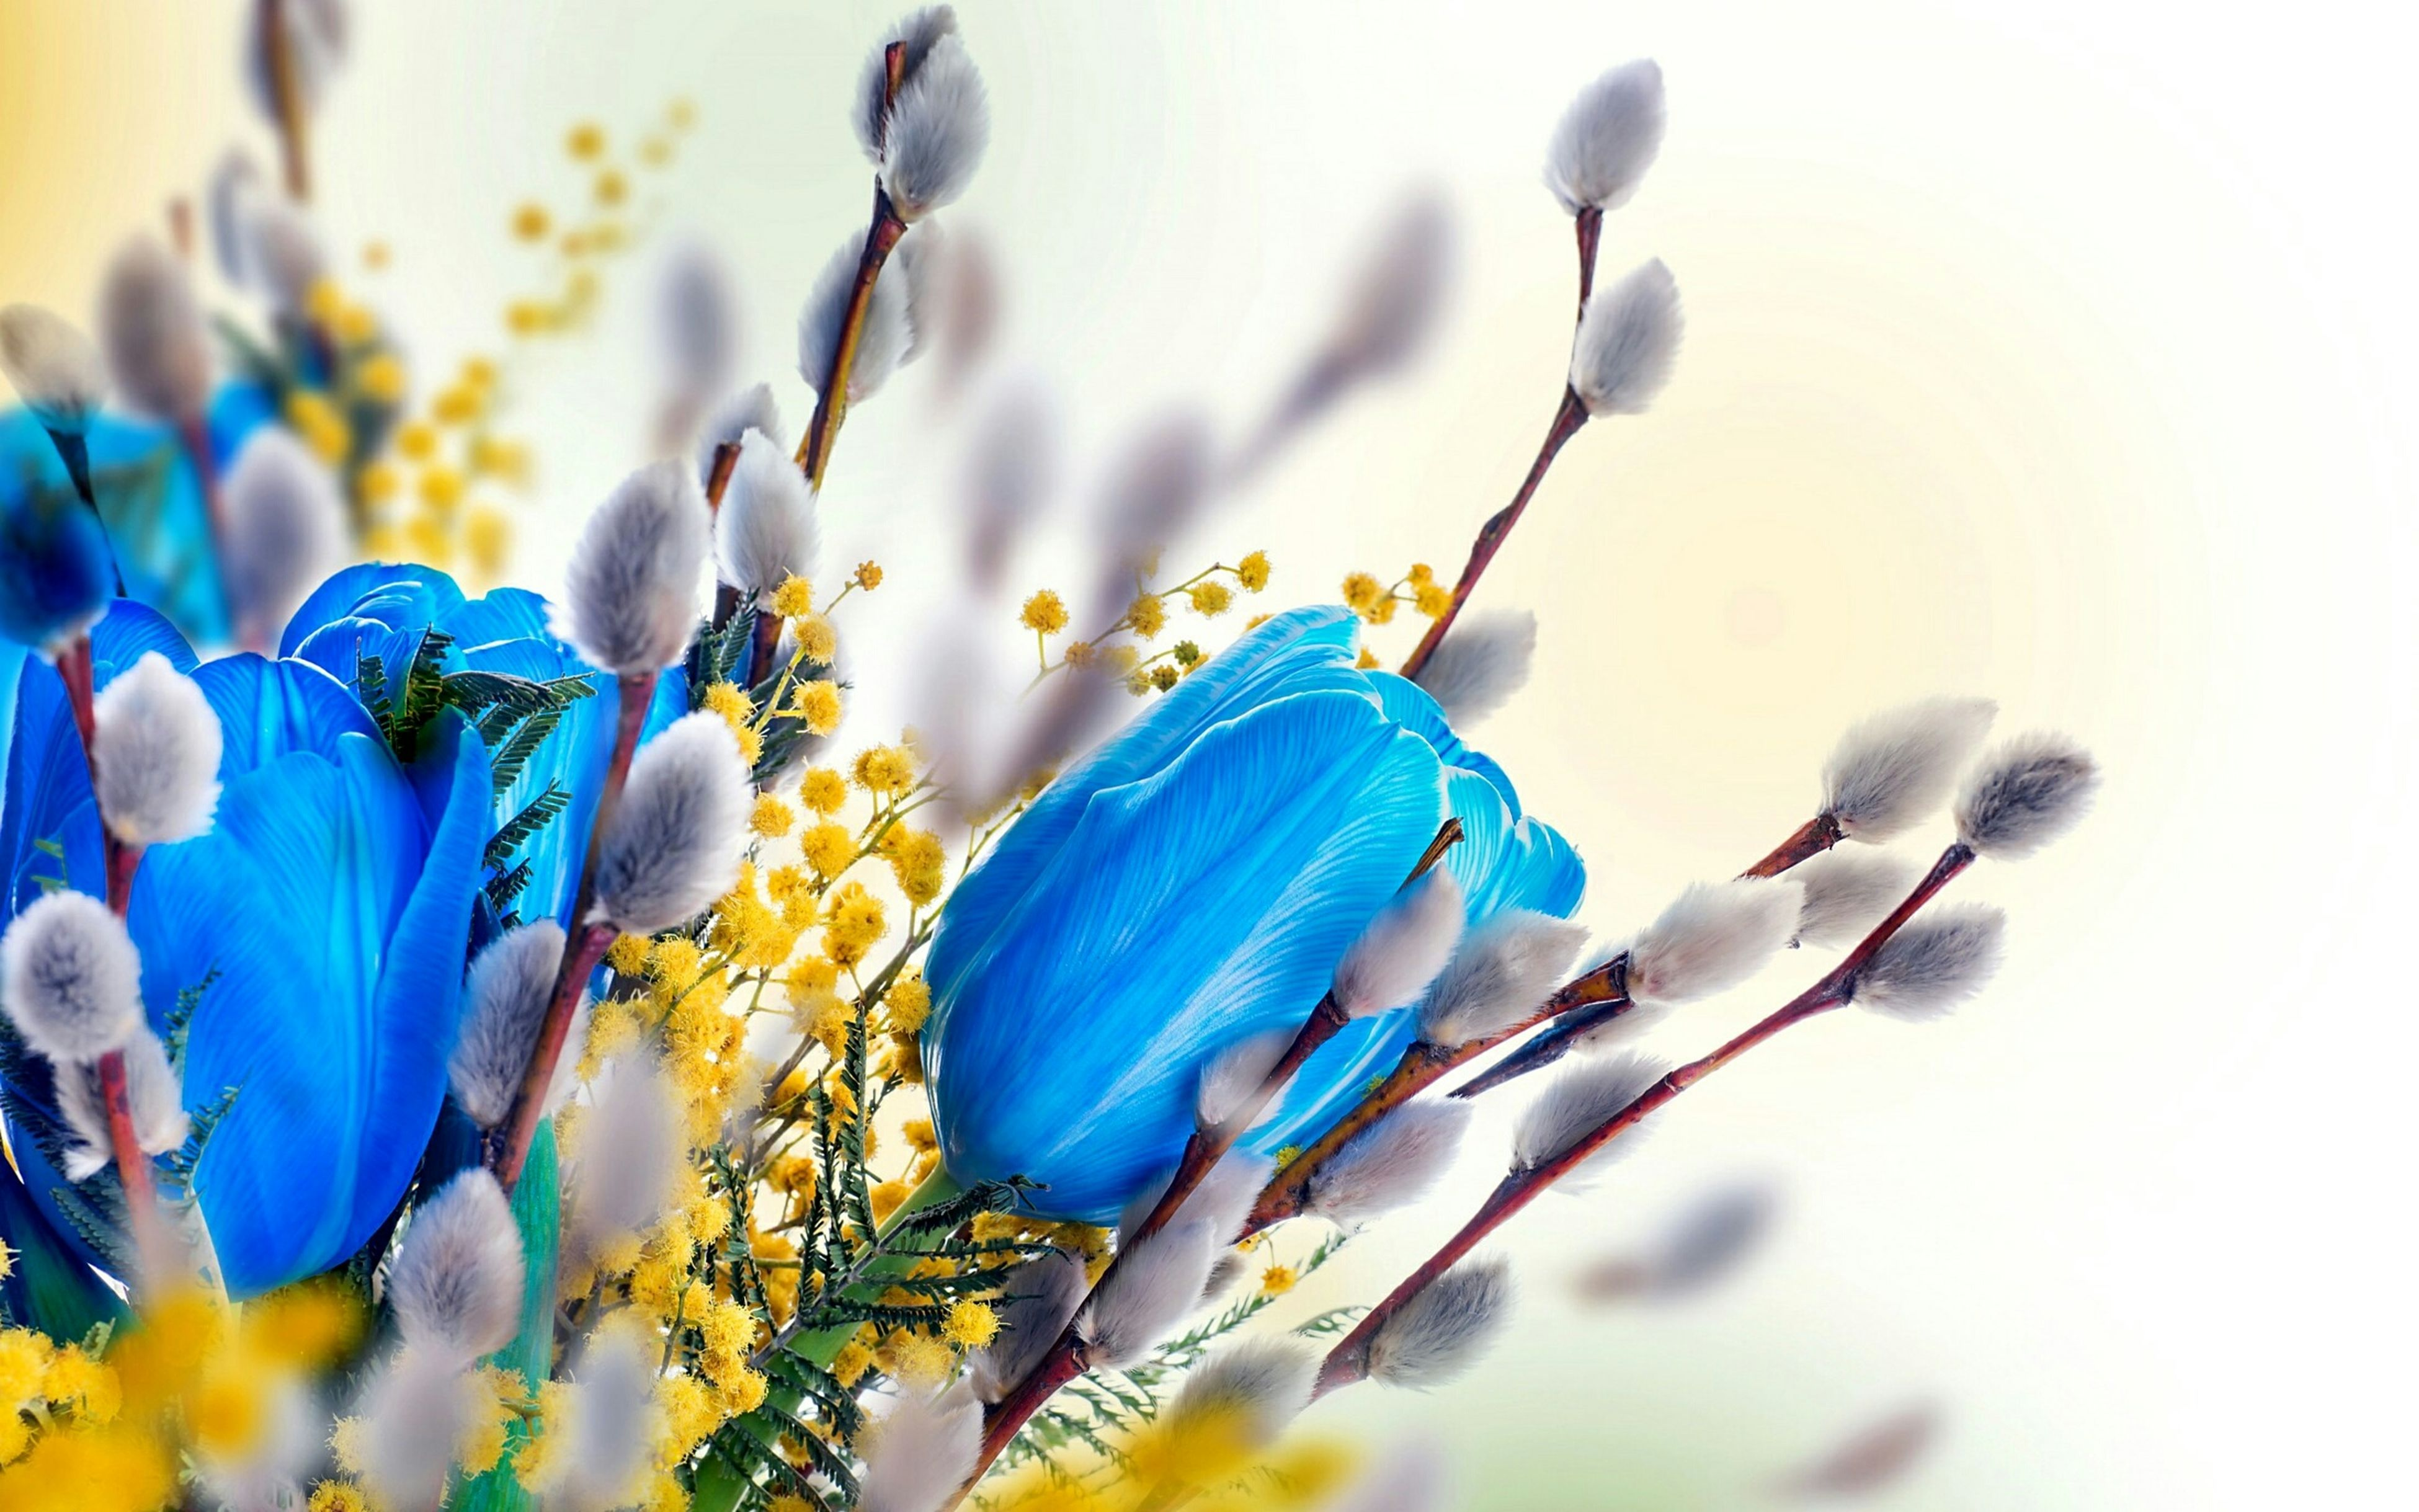 flower, fragility, purple, petal, blue, freshness, close-up, focus on foreground, beauty in nature, flower head, growth, nature, selective focus, plant, blooming, stem, no people, yellow, day, outdoors